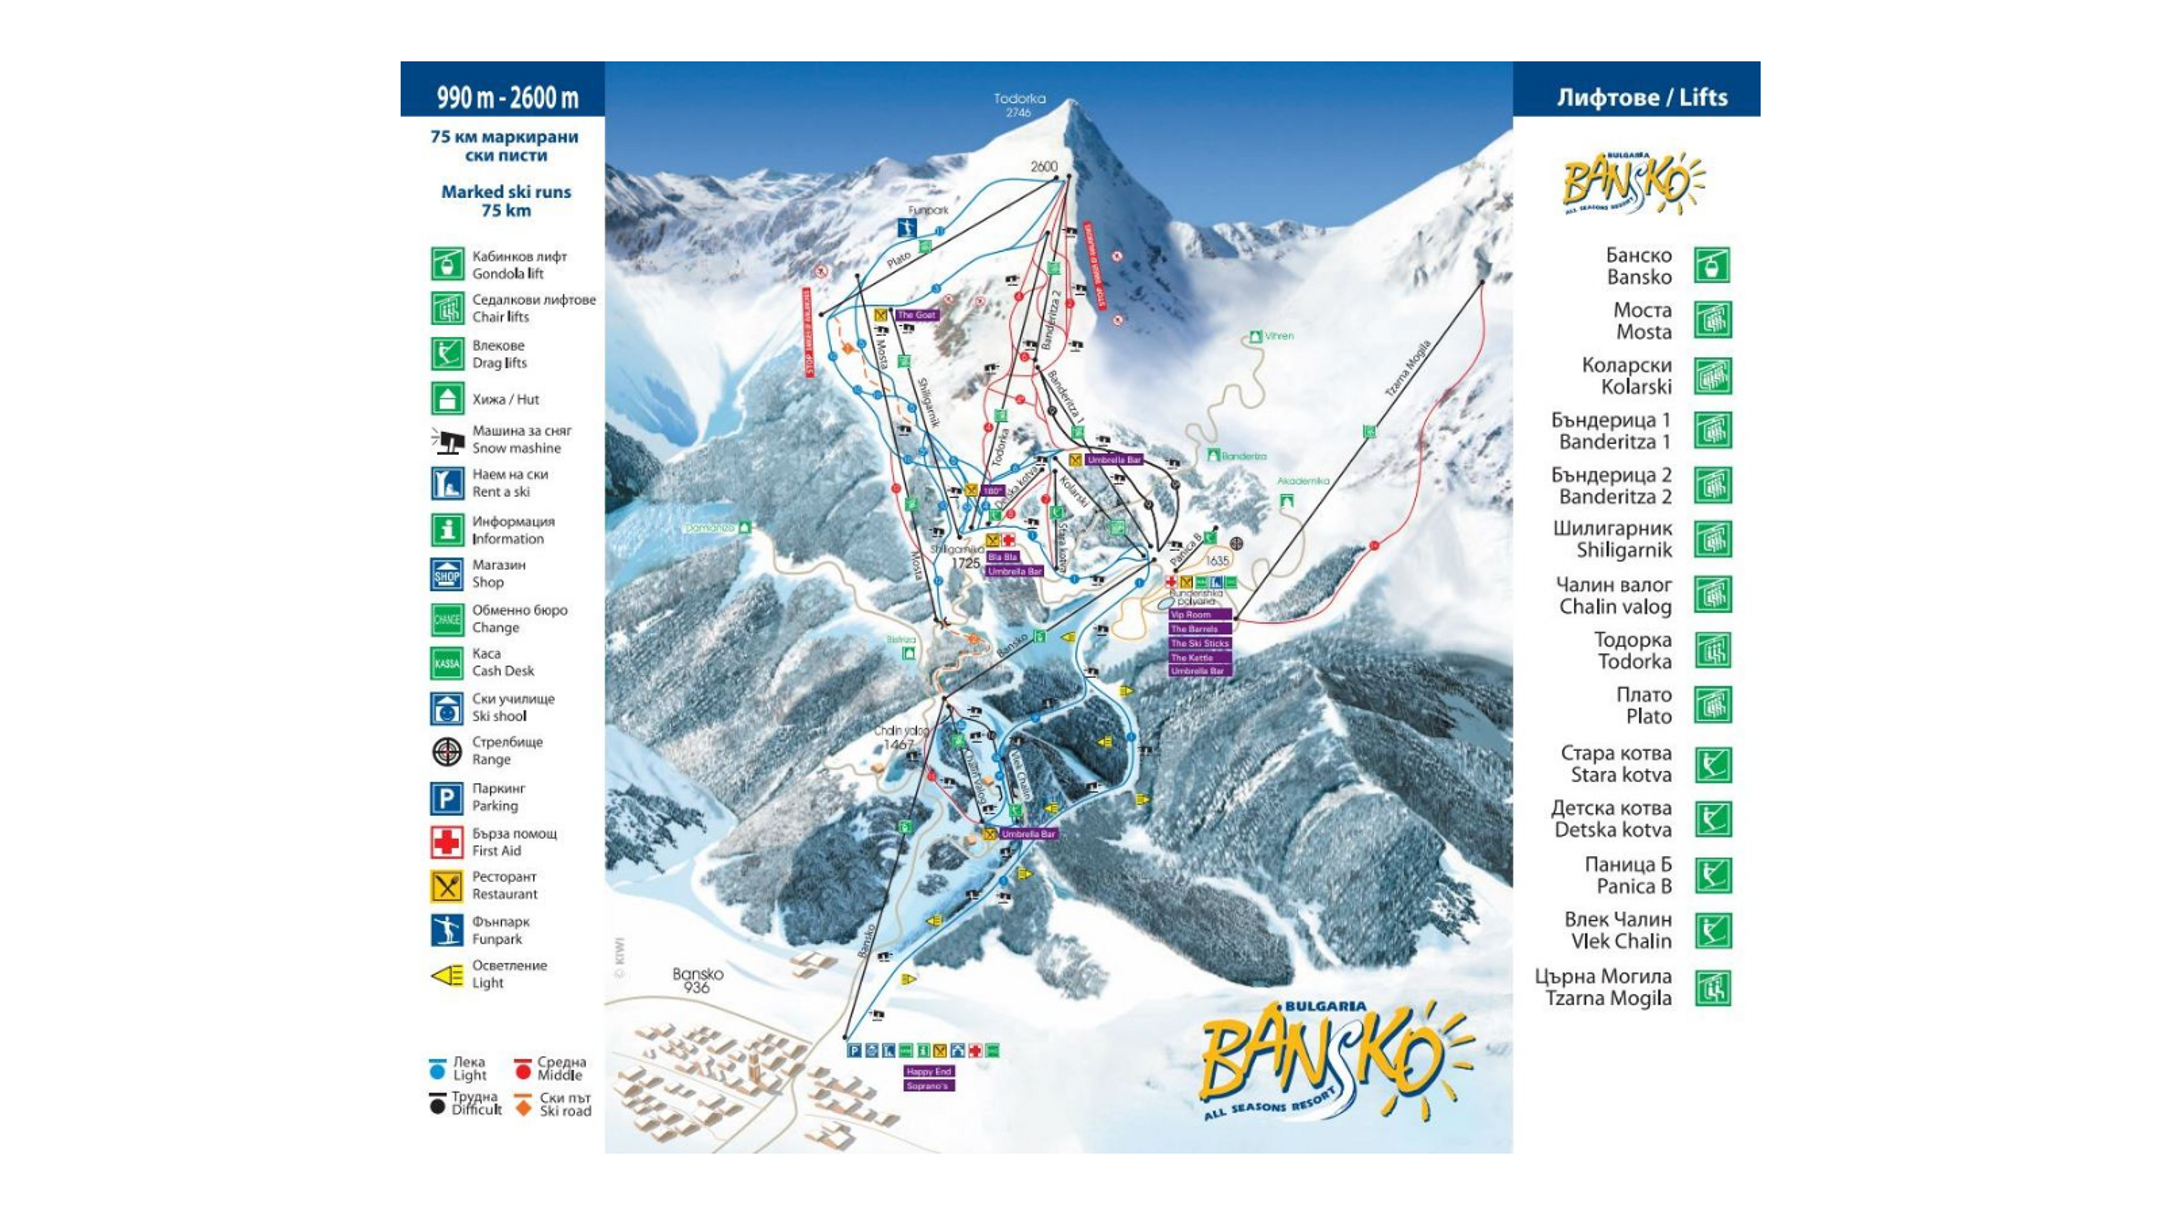 Bansko ski-resort-trail-map Bulgaria ripatrip